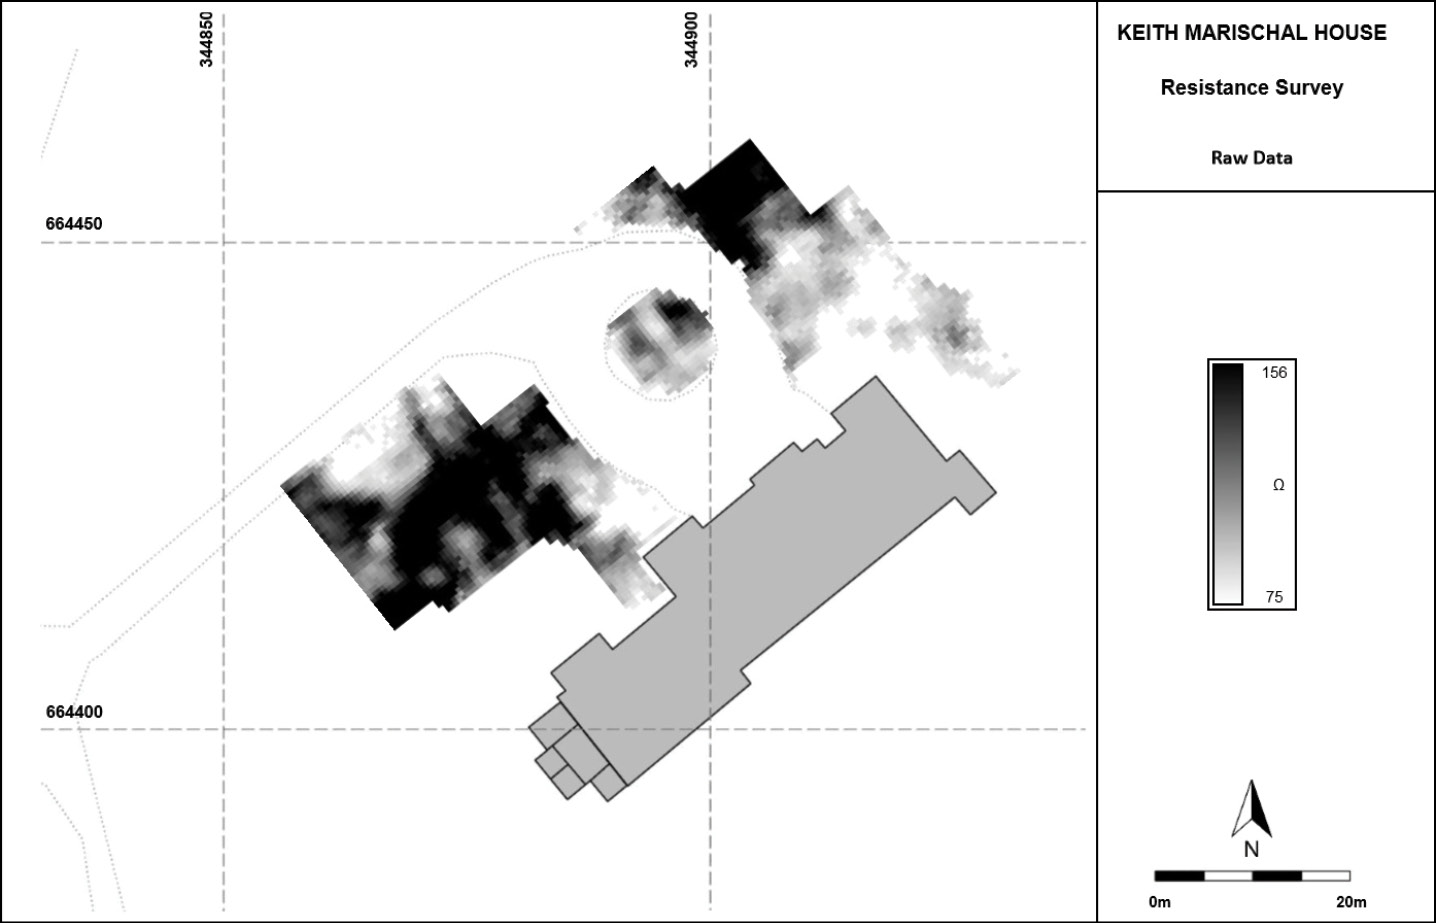 LEFT These images show the results of a recent resistivity survey at Keith Marischal. It identified a number of areas of possible archaeology, and, even though a clear floorplan could not be seen, features that merit further investigation were highlighted particularly a large rectangular feature to the north, which might represent the foundation of the lost medieval tower.